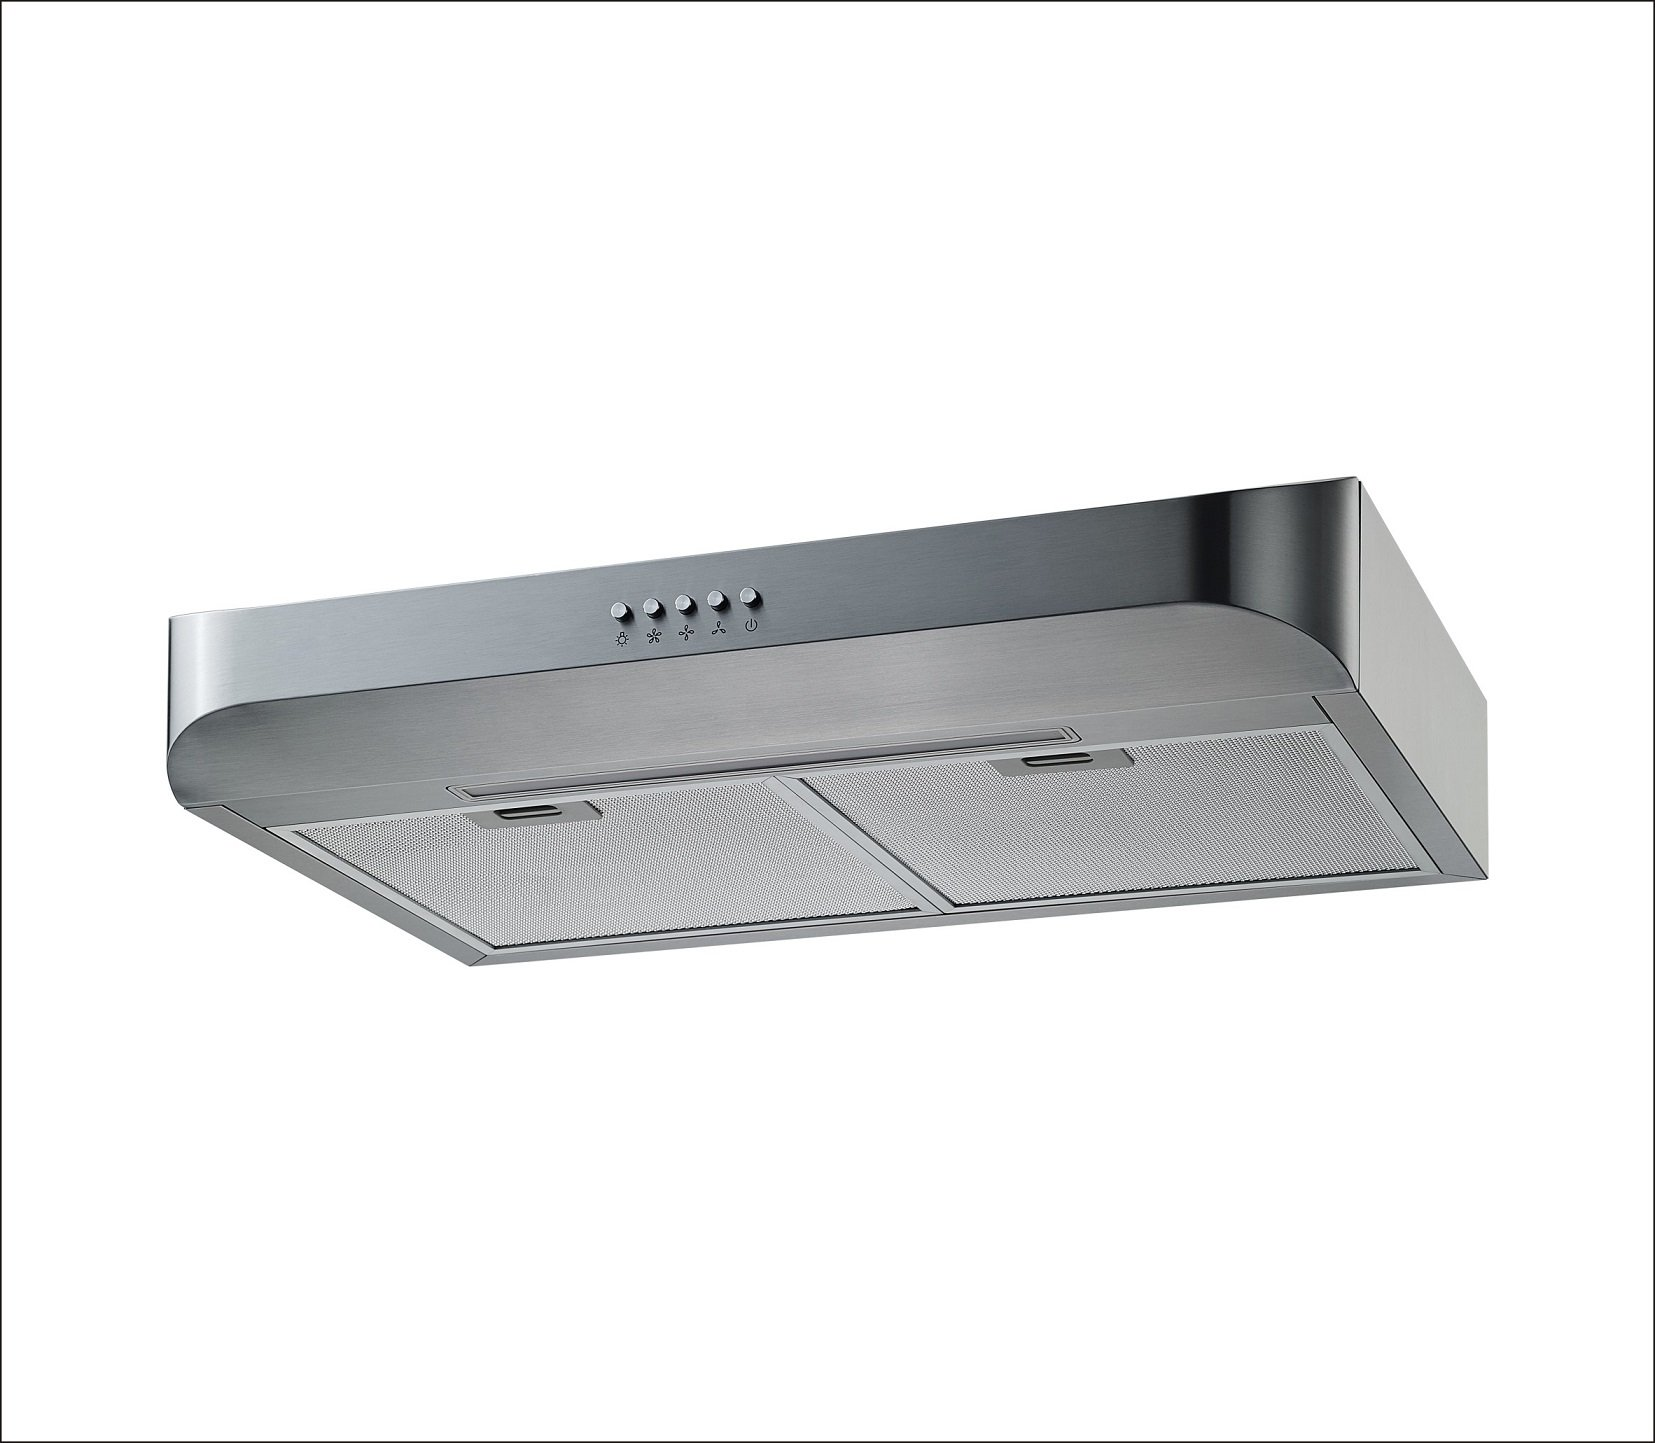 Winflo 30'' Under Cabinet Stainless Steel European Slim Design Kitchen Range Hood Push Button Control Included Dishwasher-Safe Aluminum Filters and LED Light